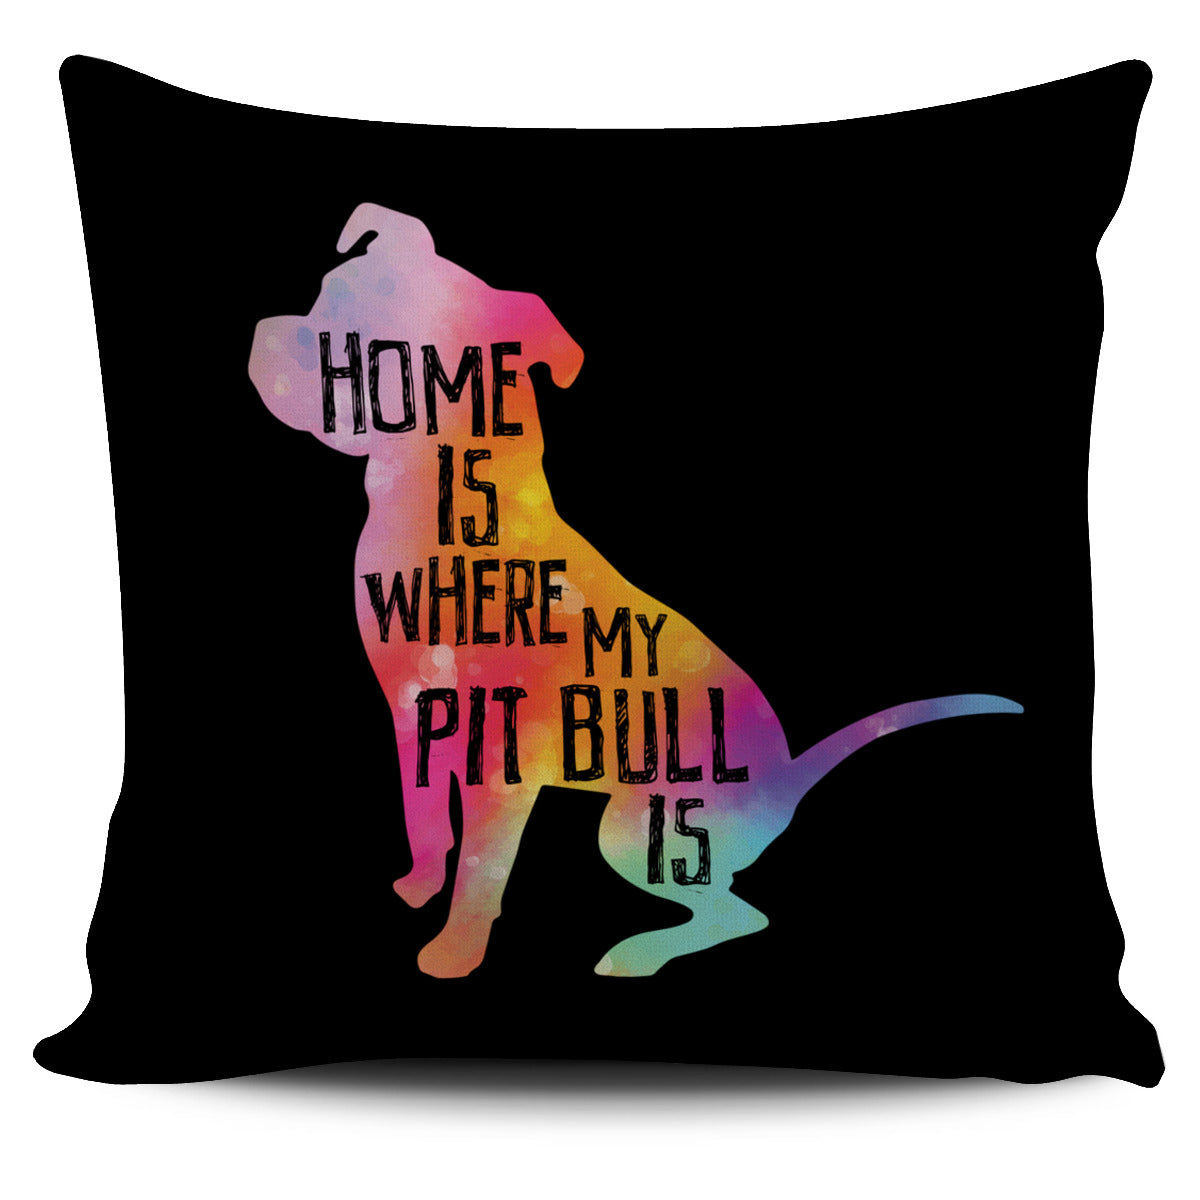 Home Is Where My Pit Bull Is Pillow Cover